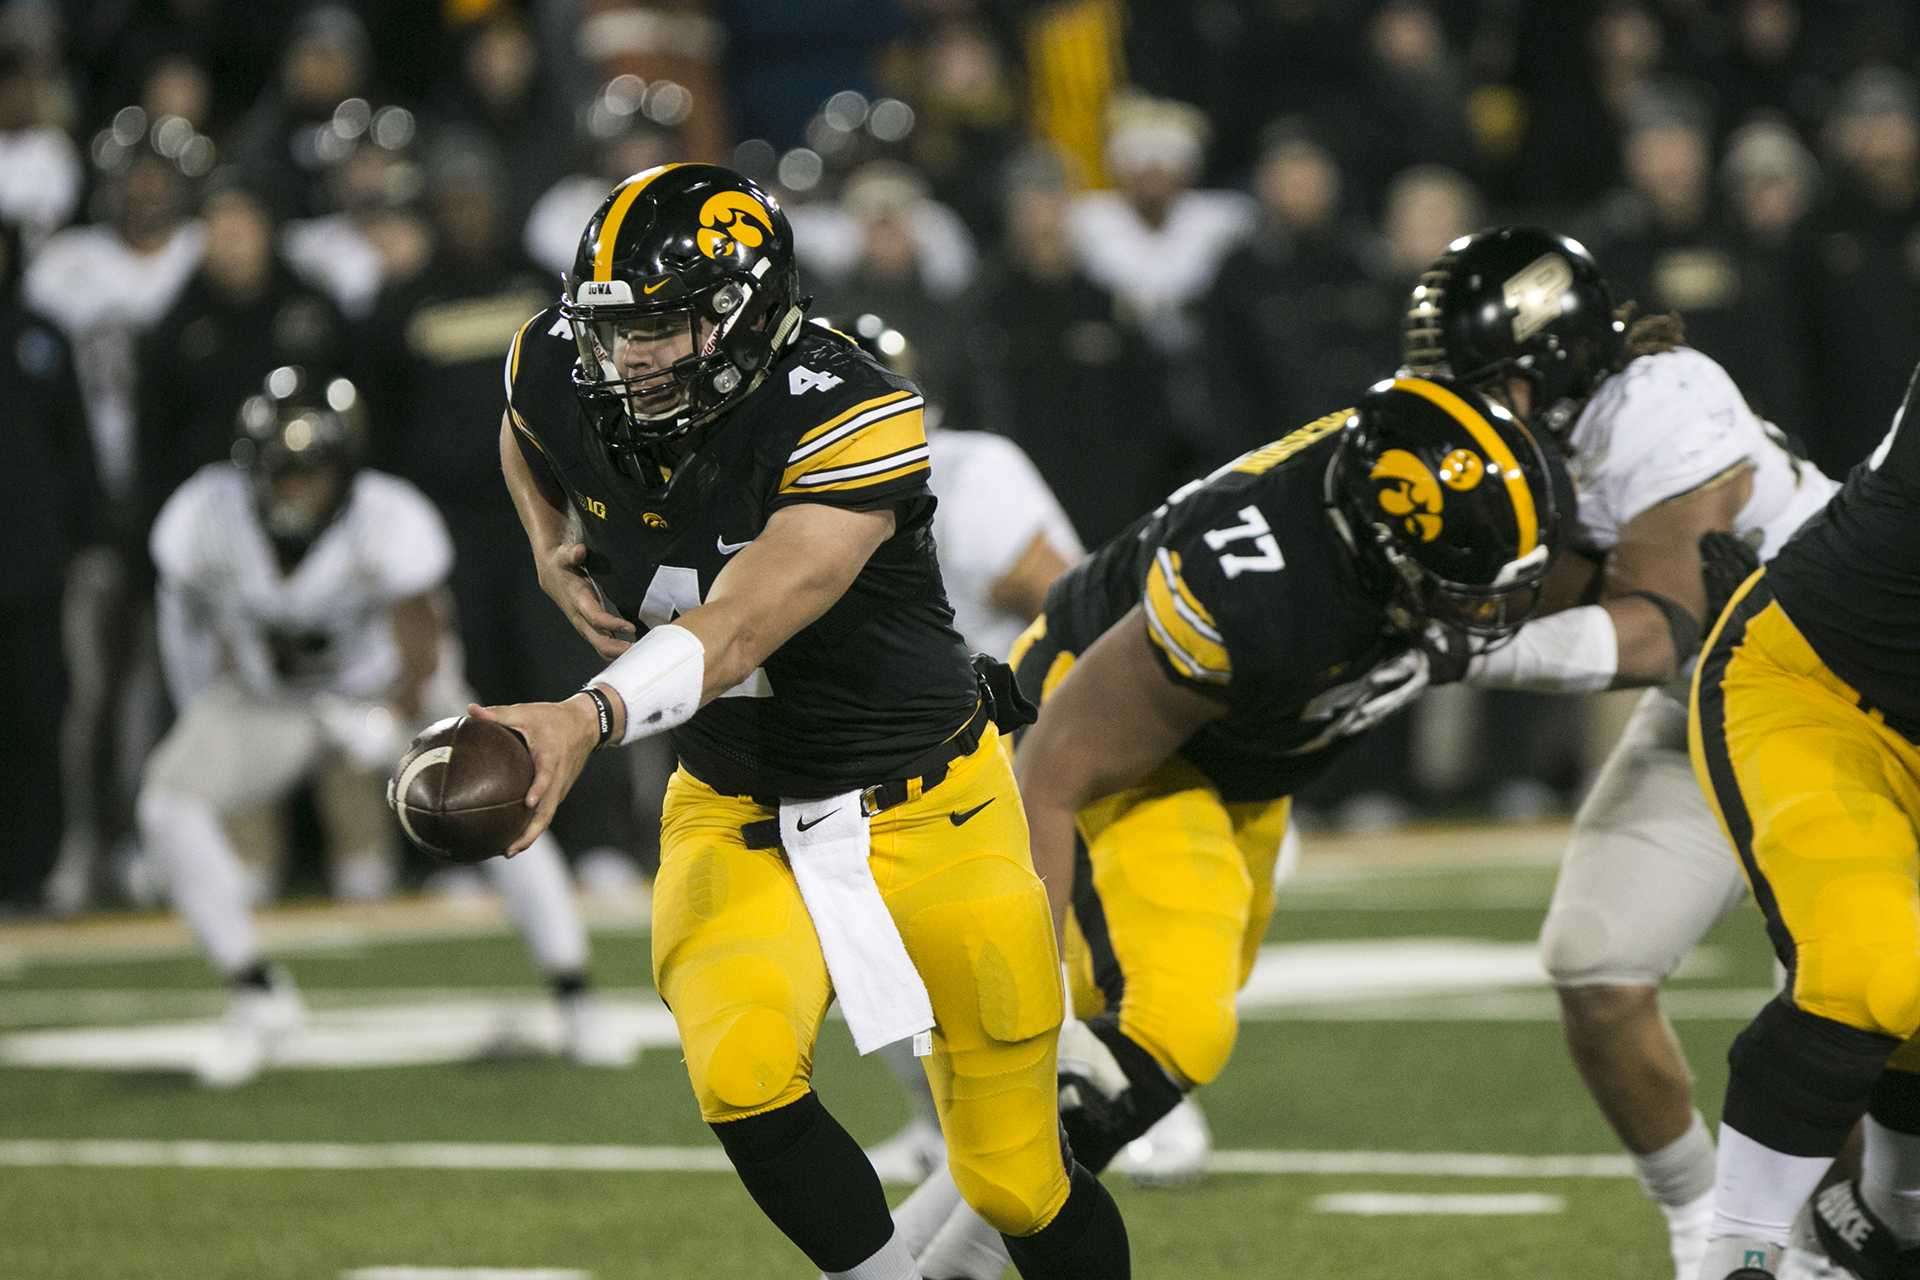 Iowa quarterback Nate Stanley hands a ball off during the Iowa/Purdue football game in Kinnick Stadium on Saturday, Nov. 18, 2017. The Boilermakers defeated the Hawkeyes, 24-15. (Joseph Cress/The Daily Iowan)